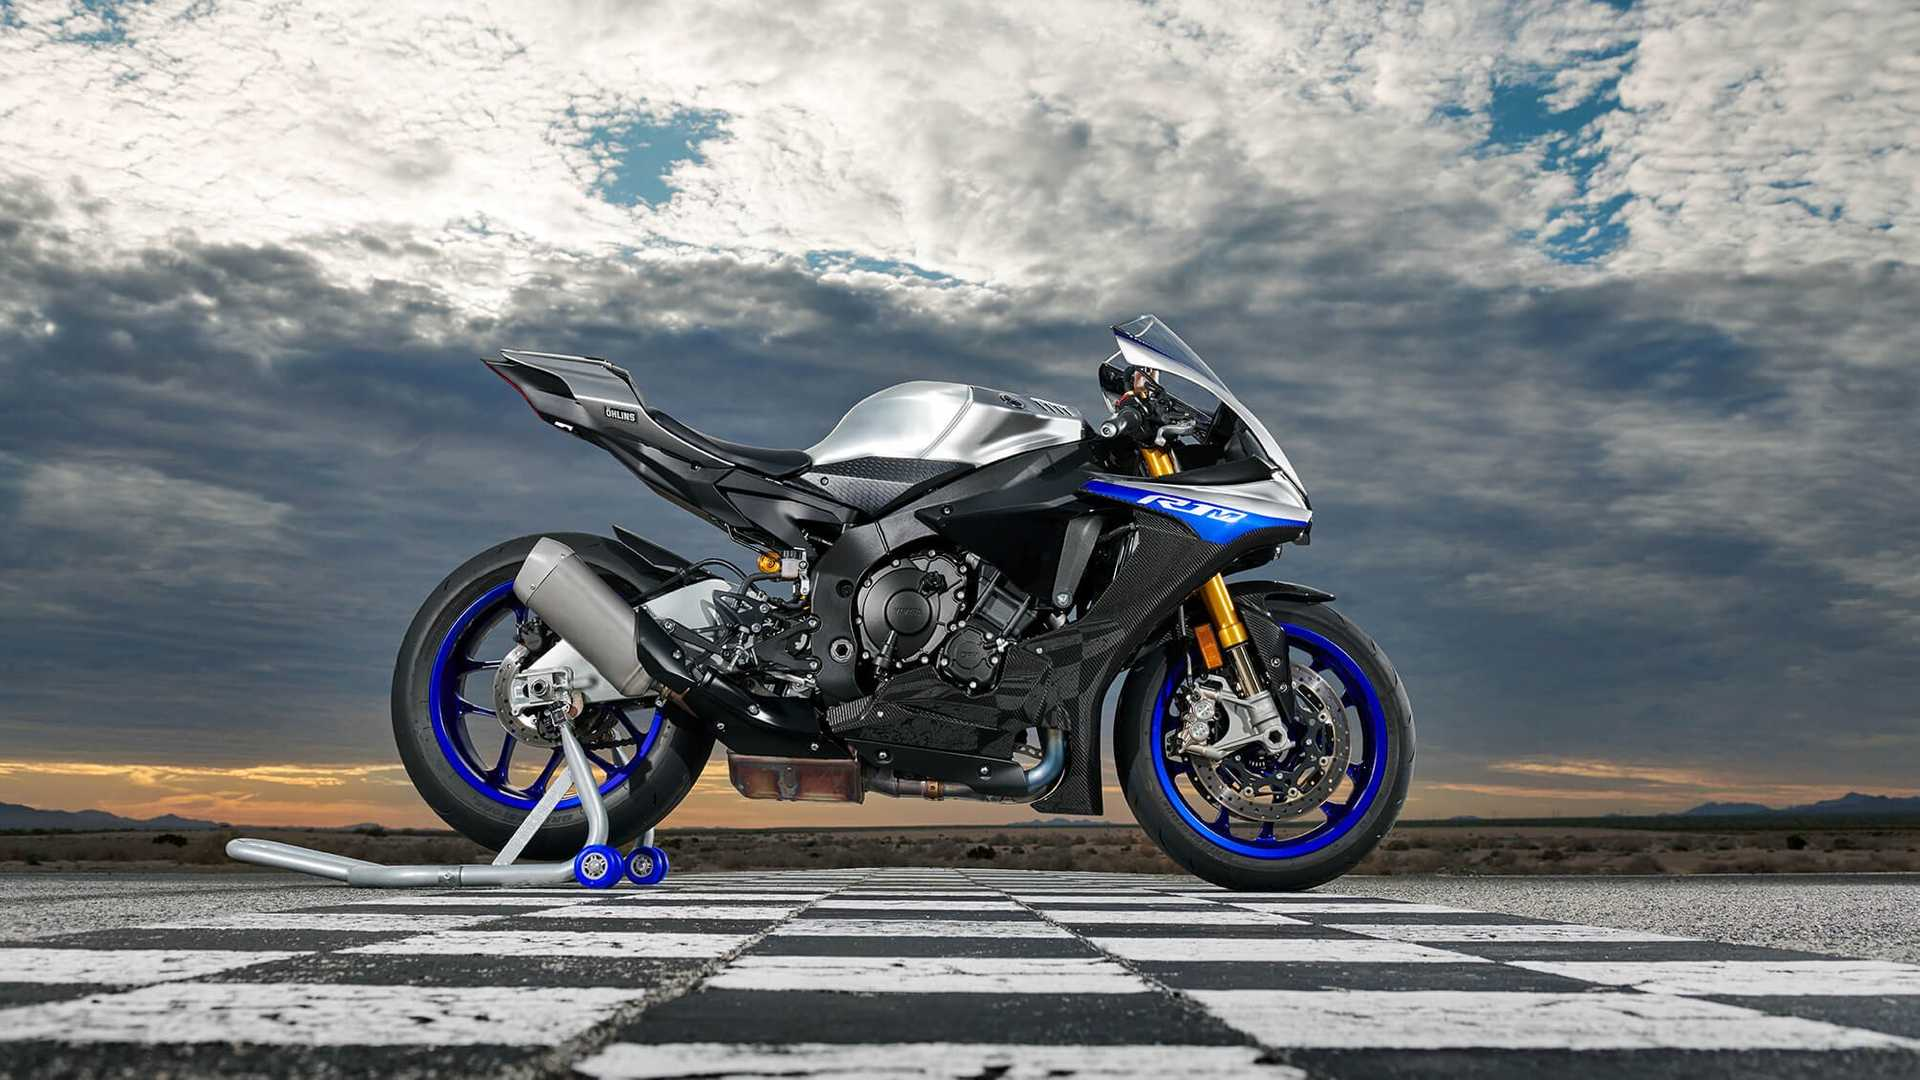 Rumor Control Yamaha May Redesign R1 Due To Emission Laws